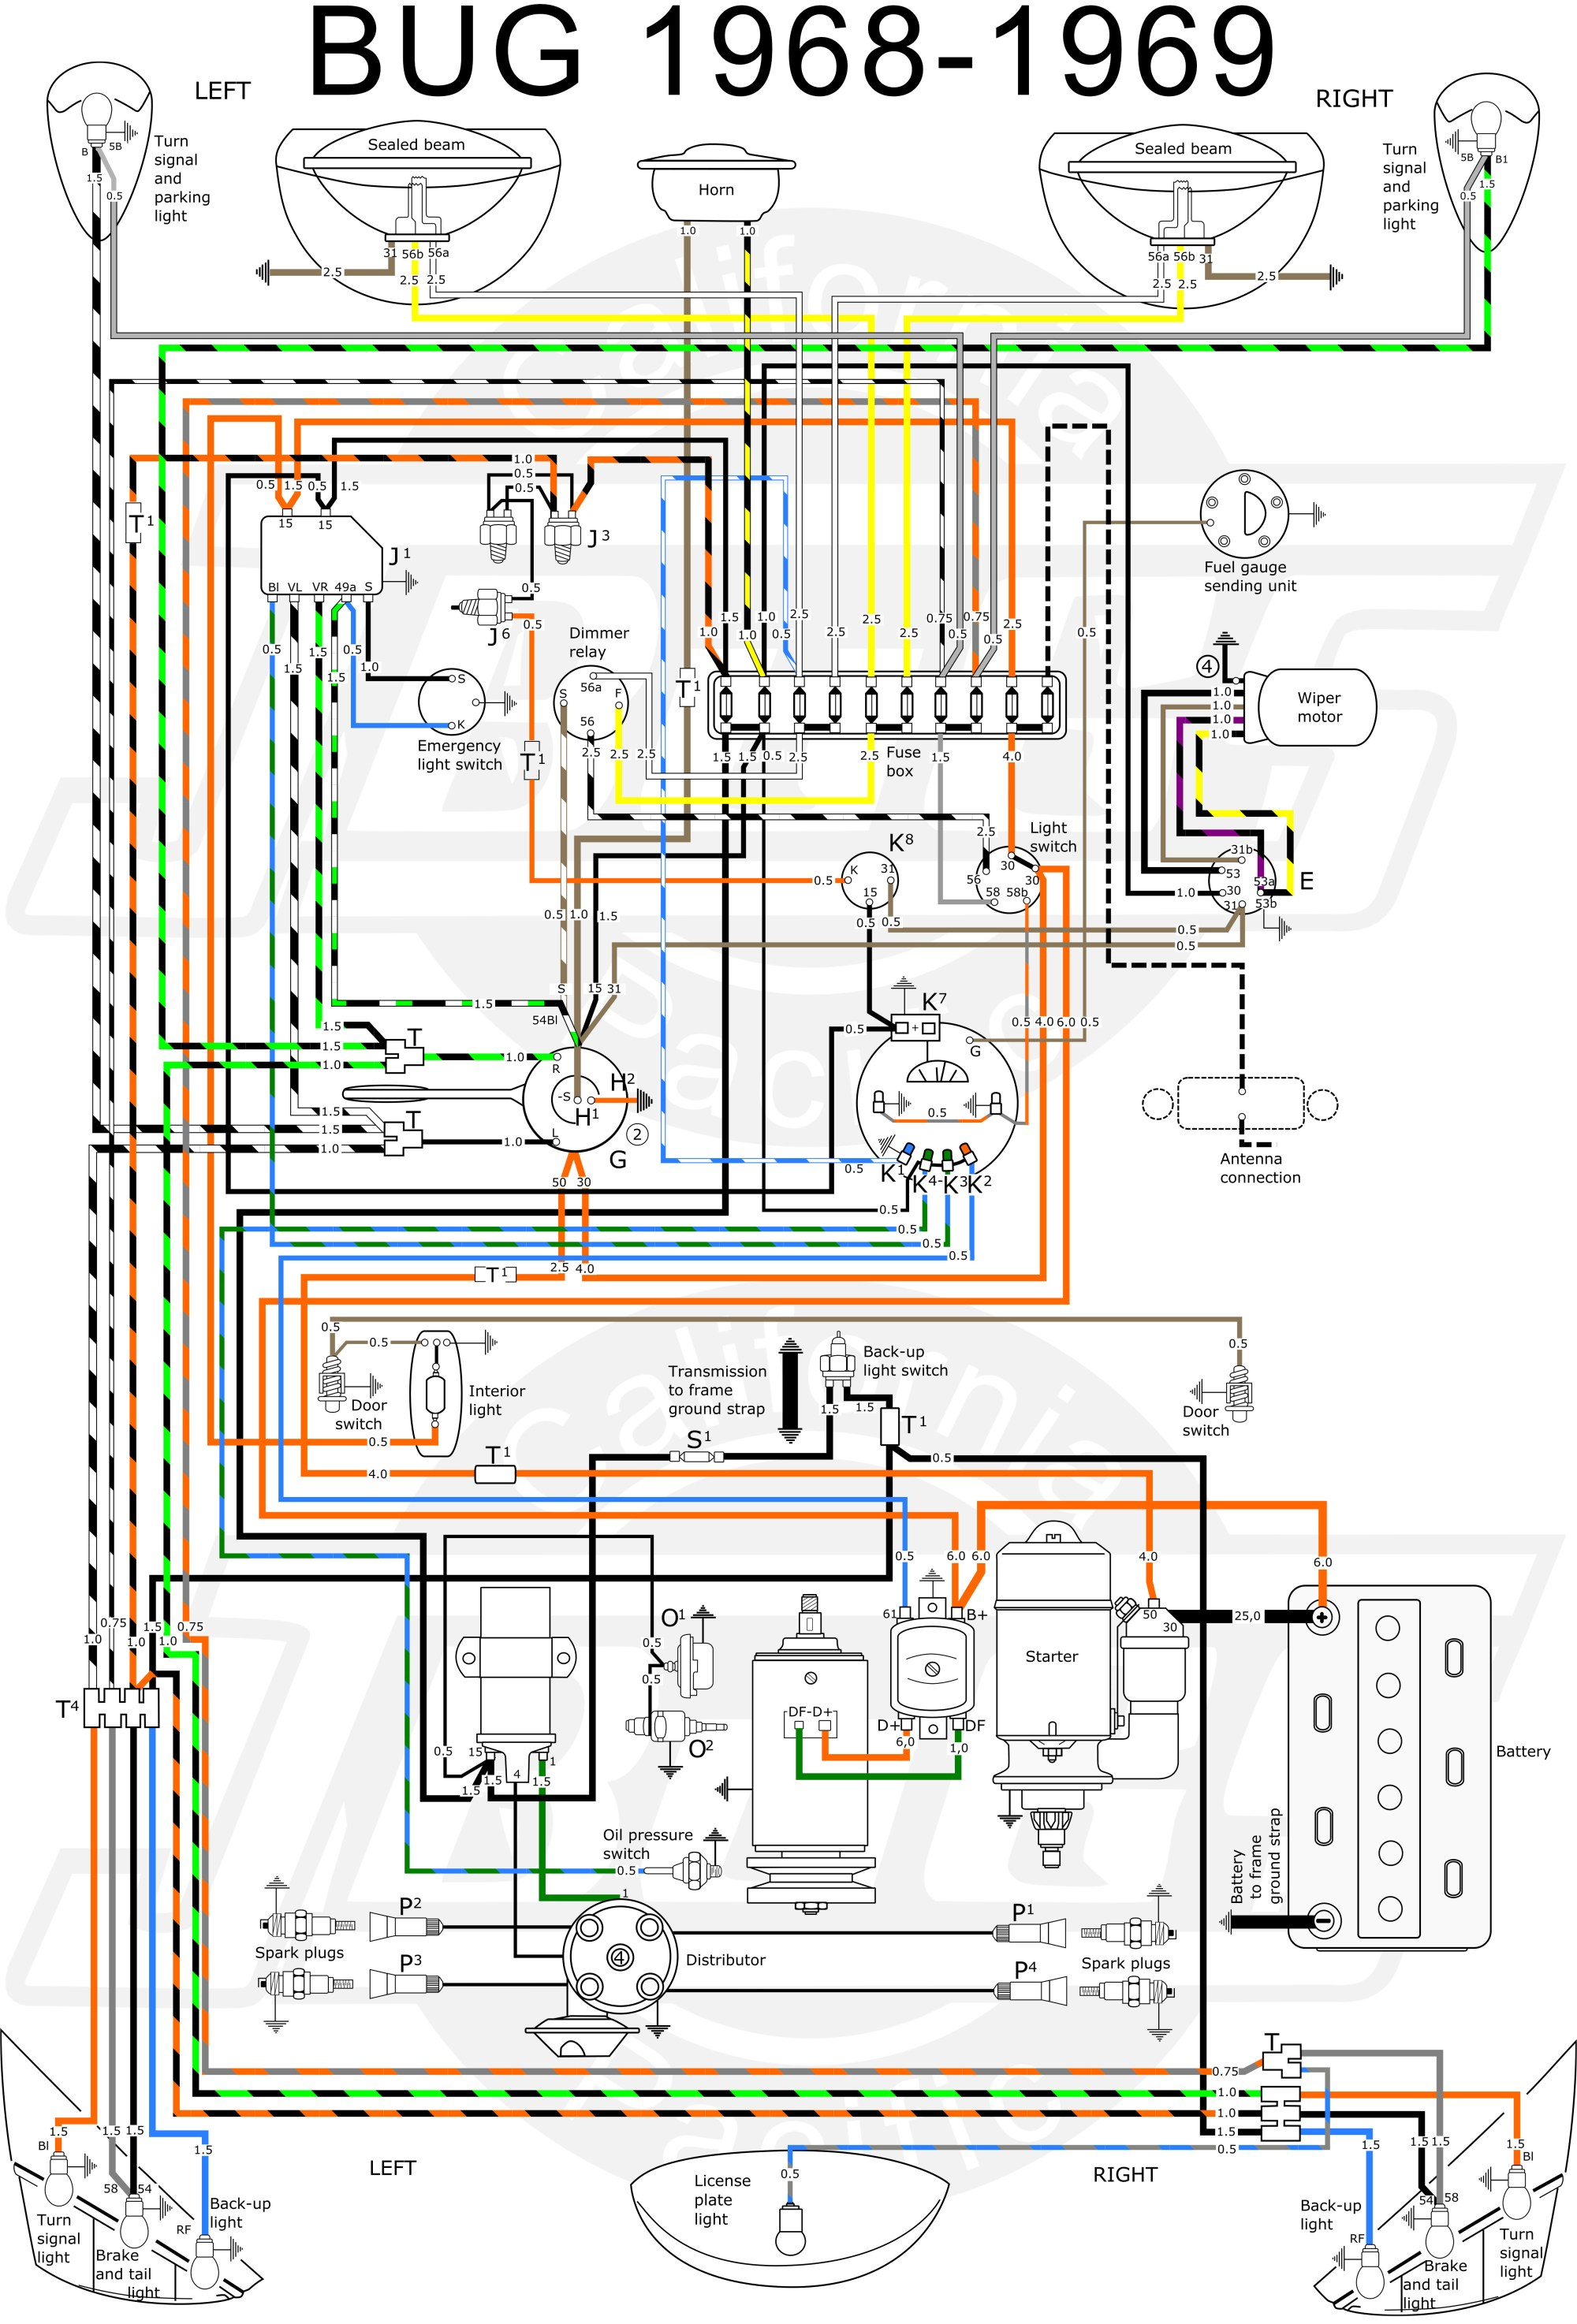 hight resolution of 1968 datsun wiring diagram blog wiring diagram 1968 datsun wiring diagram